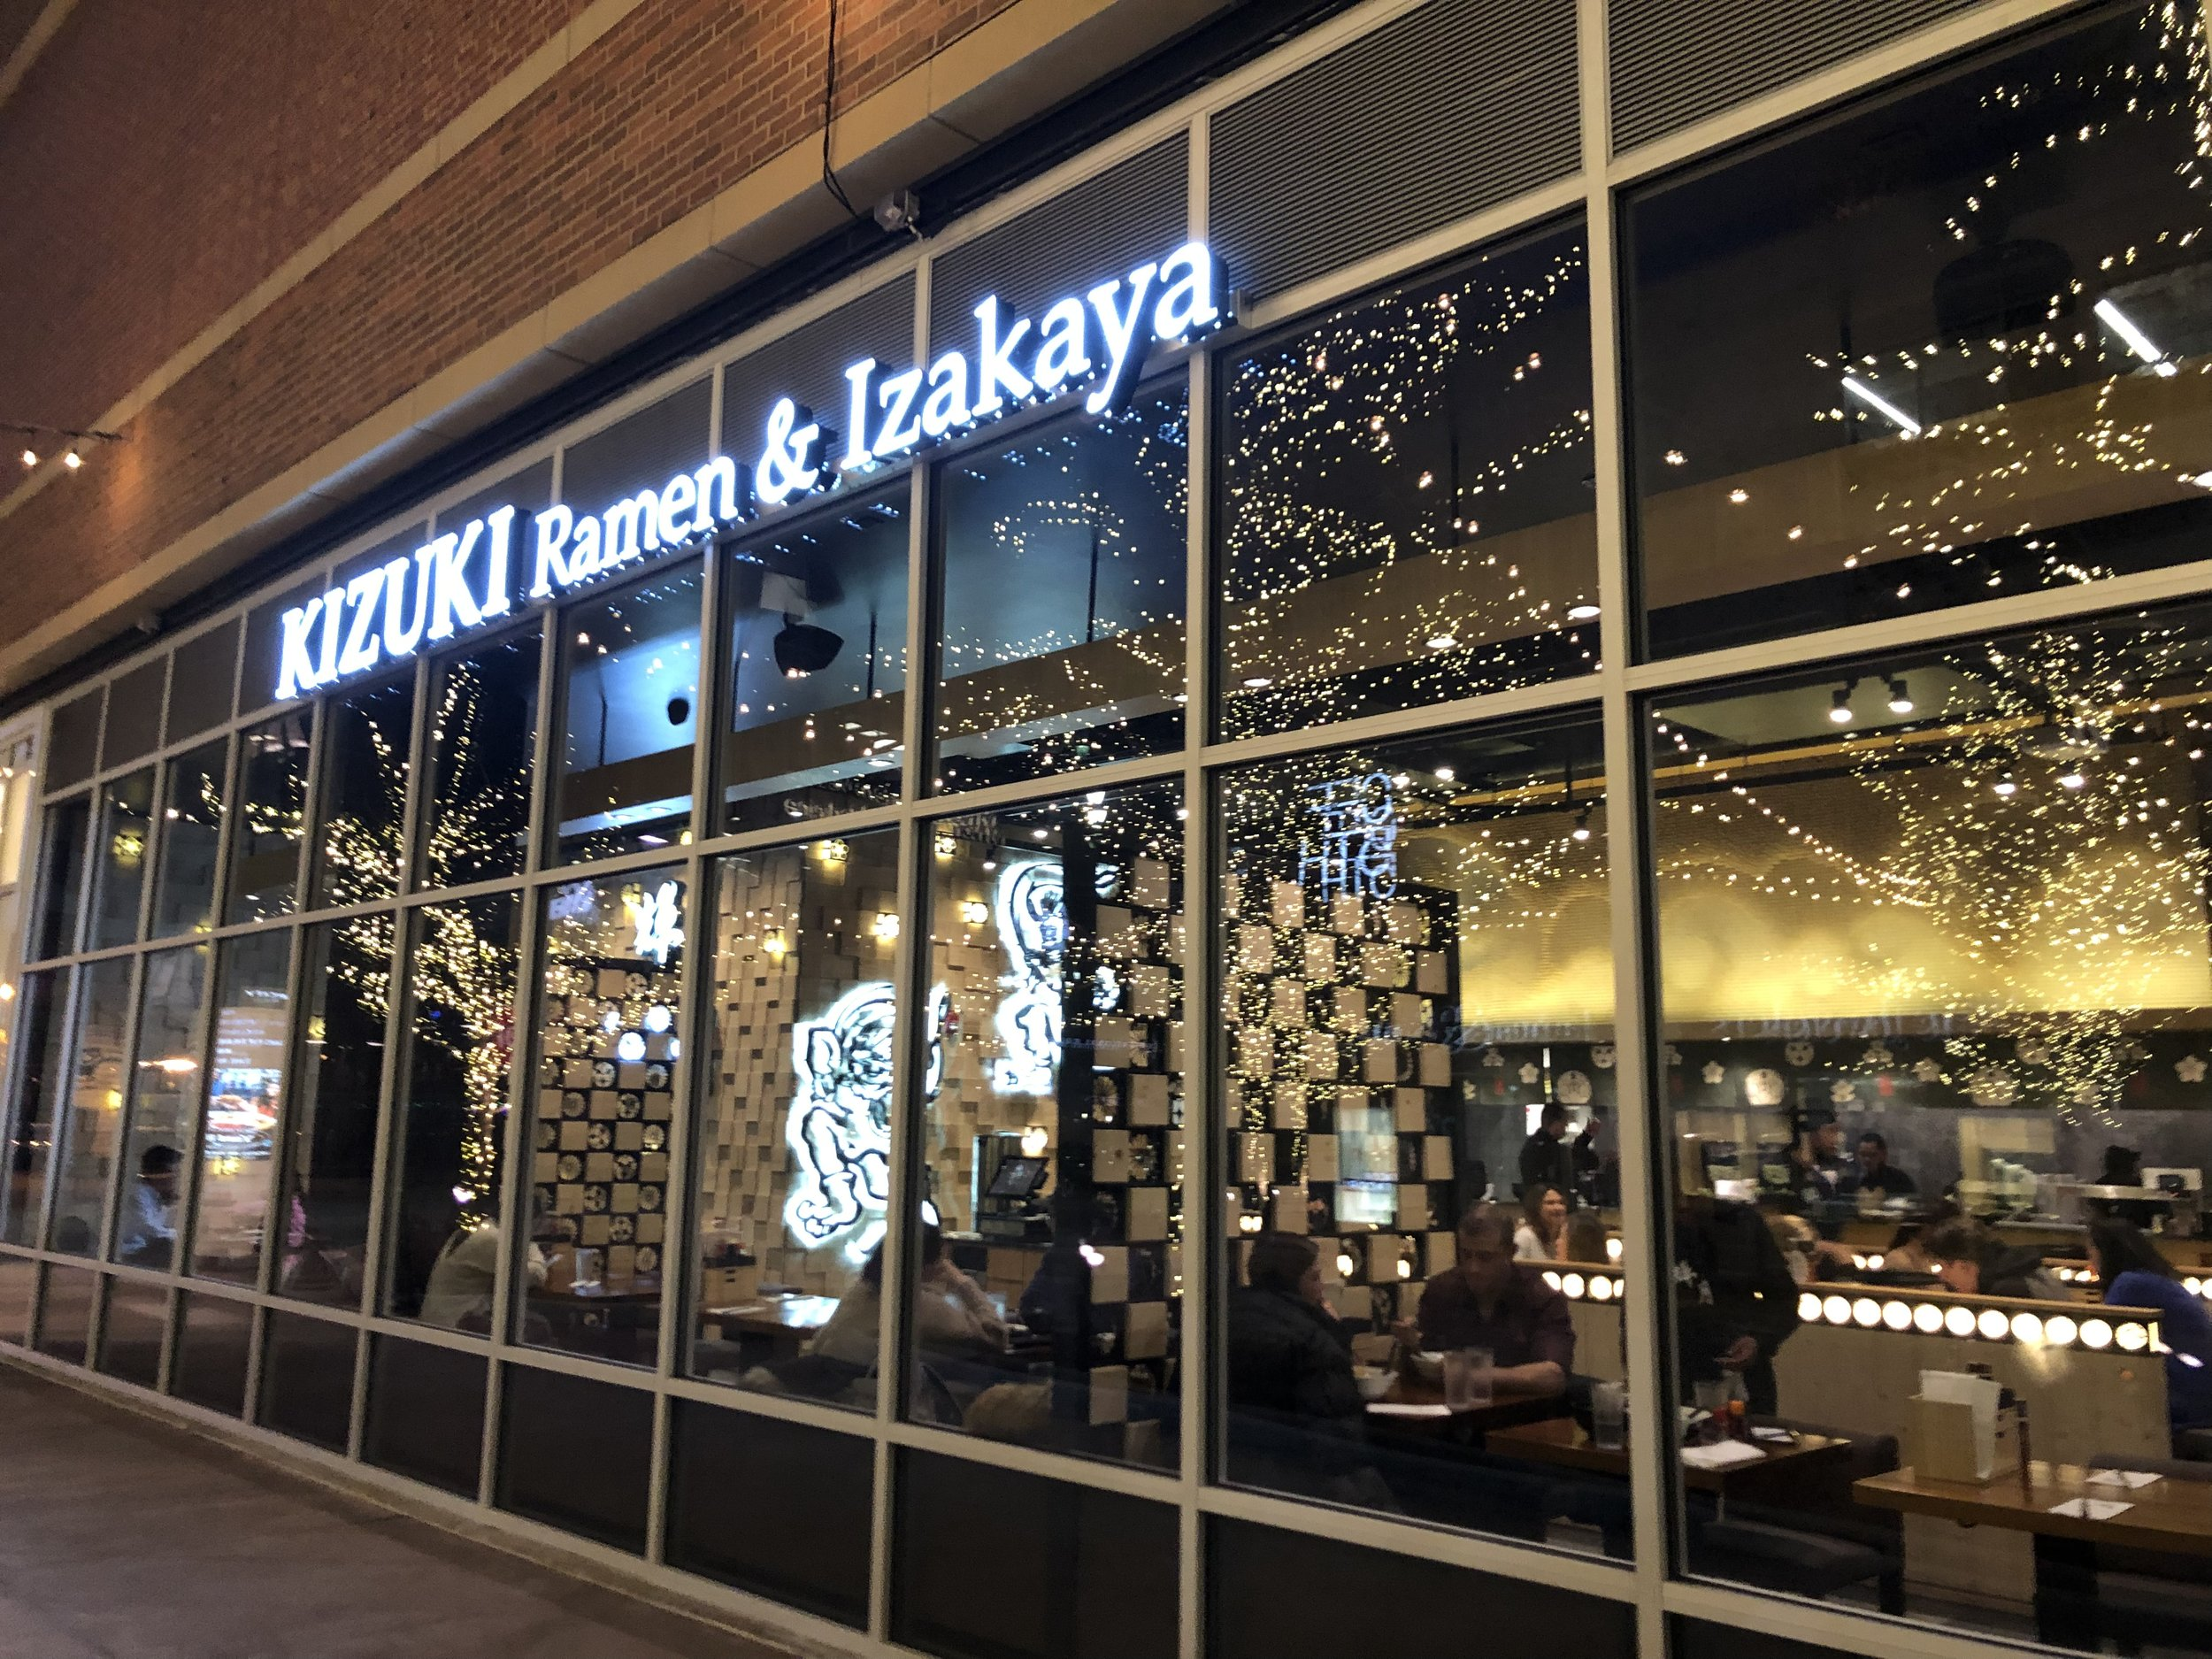 Kizuki Ramen and izakaya at NEWCITY